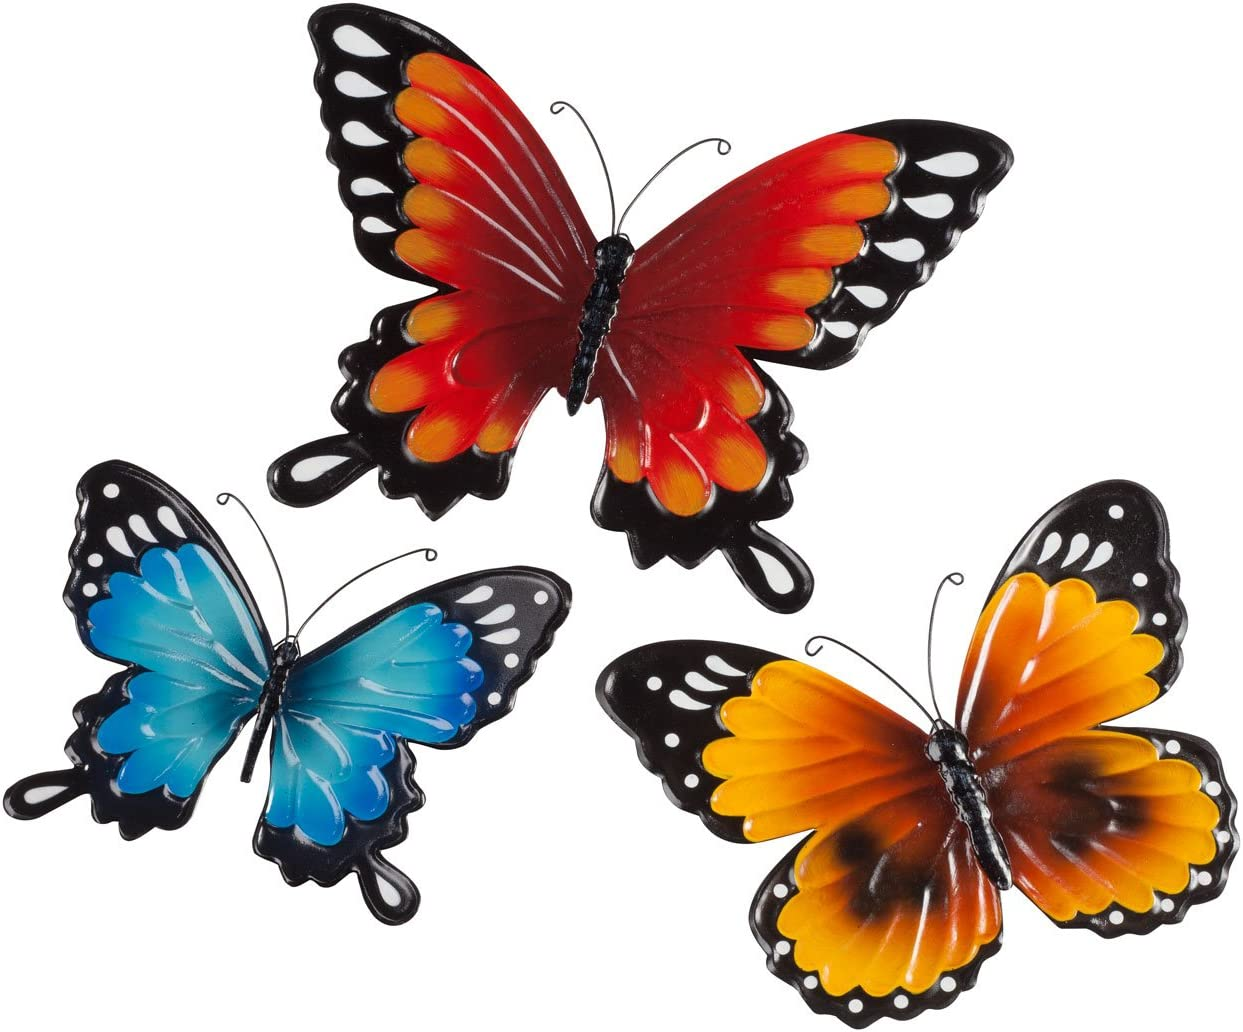 Fox Valley Traders Indoor Outdoor Metal Butterflies, Set of 3 – Blue, Yellow, and Orange Butterflies with 7 , 8 , and 10 Diameters and Triangle Display Hook